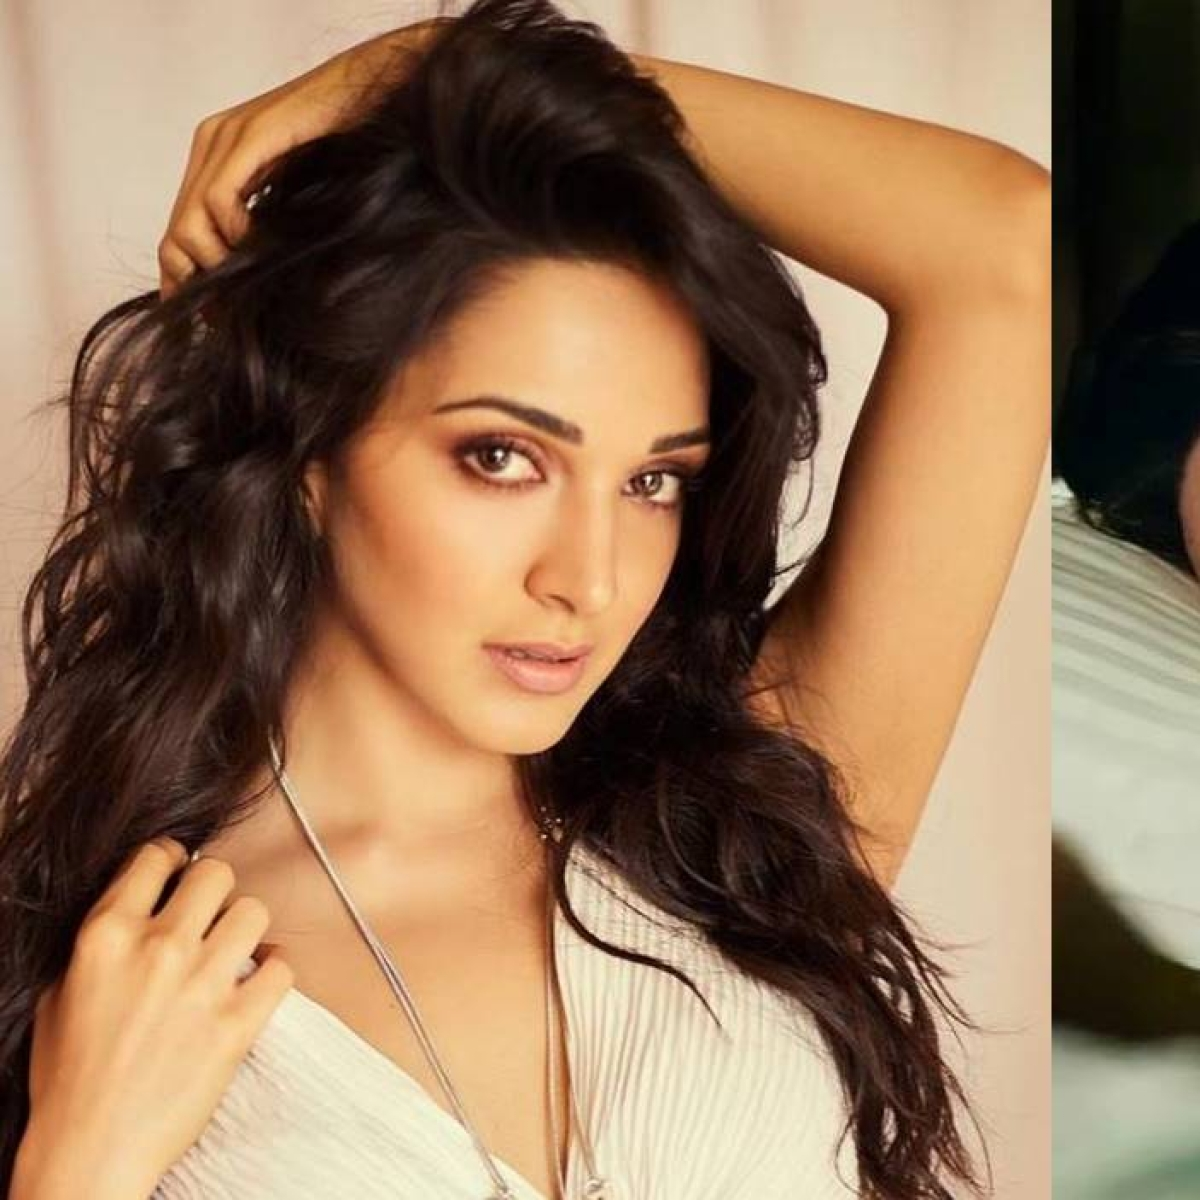 Kiara Advani's comment on Sidharth Malhotra's picture sparks frenzy among netizens